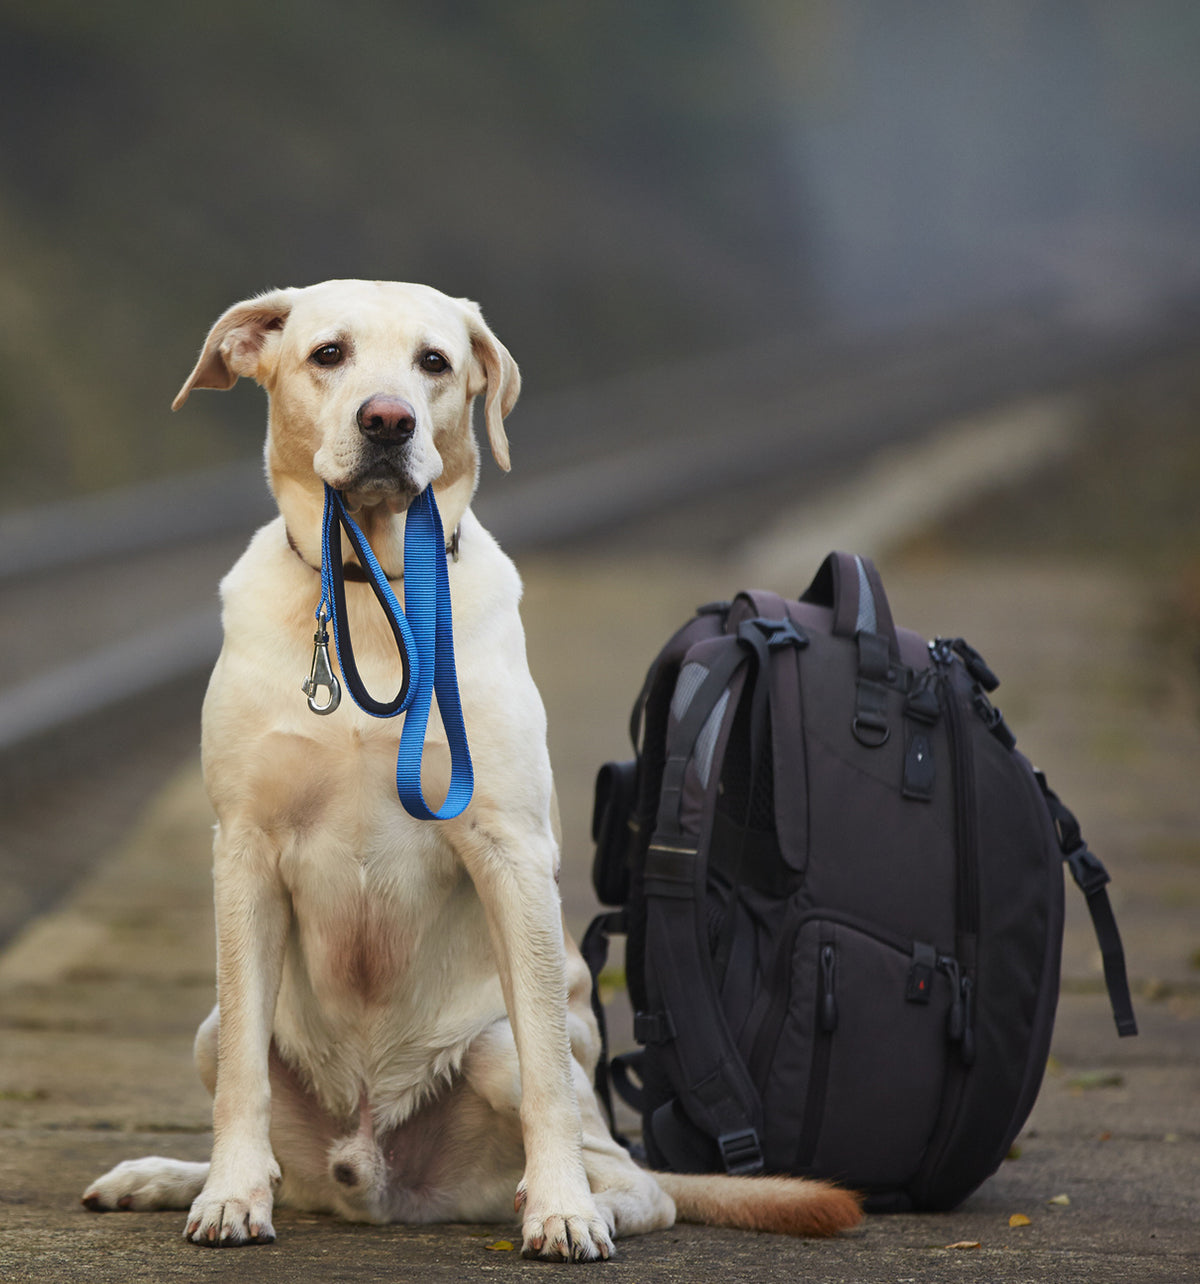 When You Travel With Your Doggo